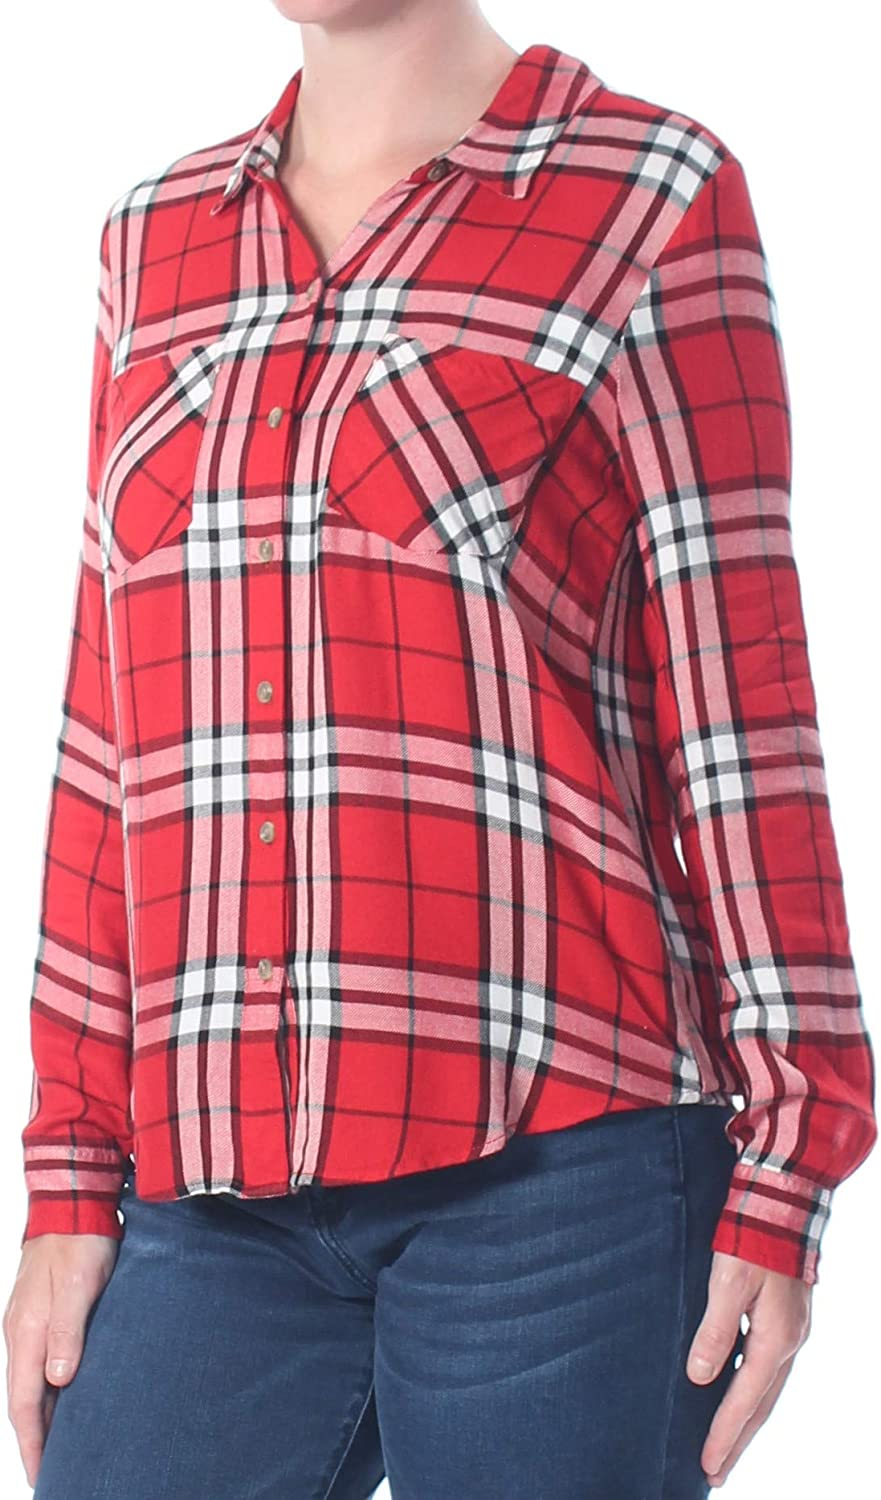 Lucky Max 76% OFF Brand Women's Button Shirt Side Plaid Dealing full price reduction